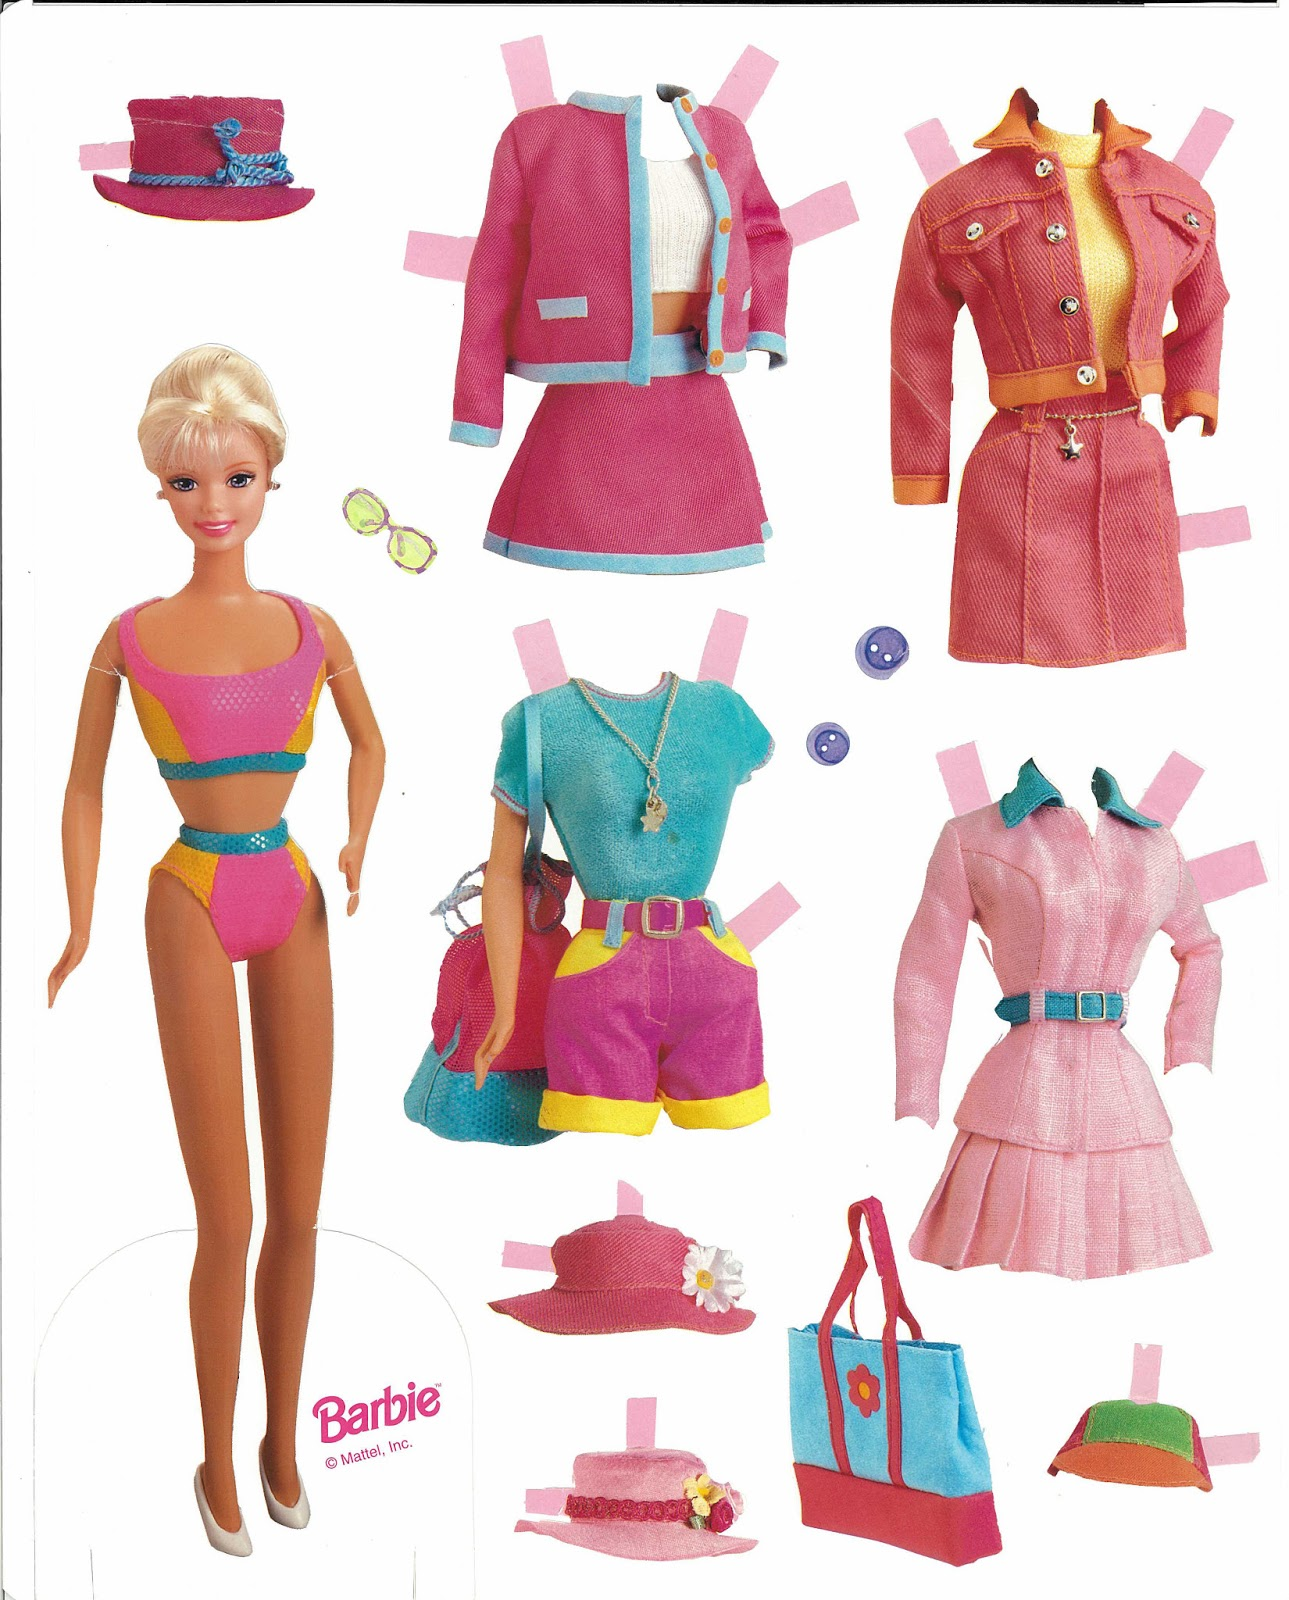 photo relating to Printable Barbie Paper Dolls identified as Miss out on Missy Paper Dolls: Barbie paper dolls